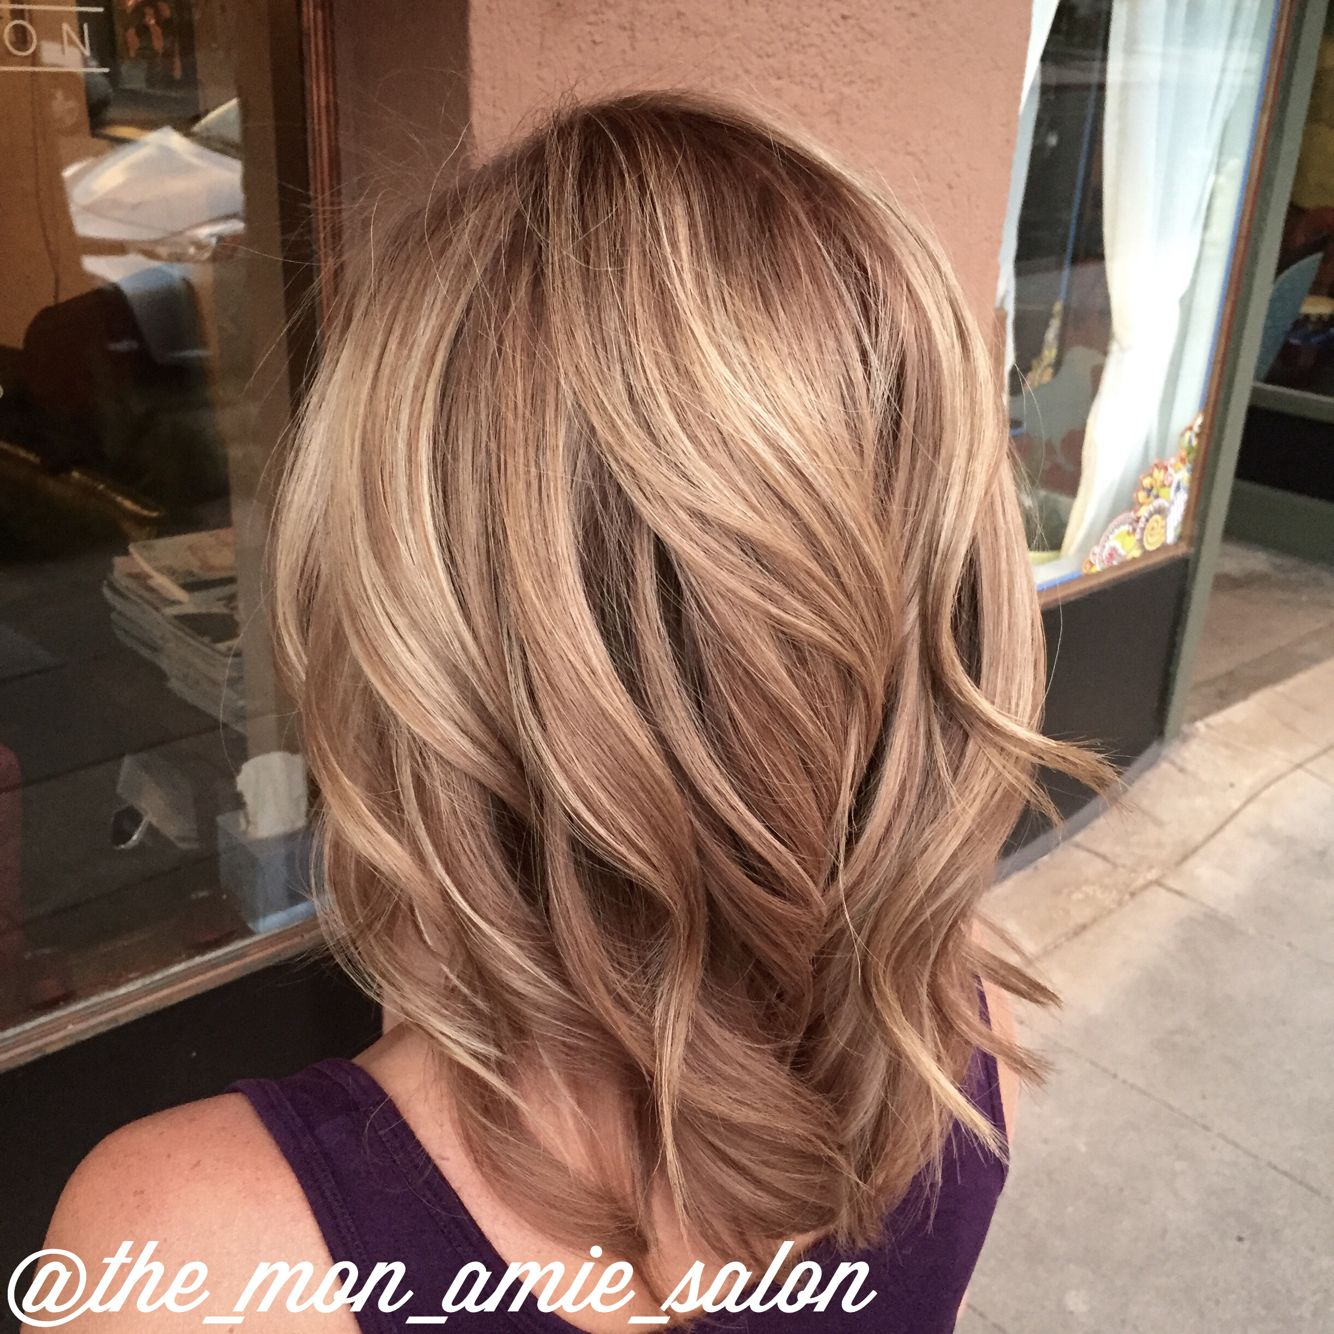 Caramel Salon Subtle Stretched Root Dark Blonde Hair Color Hair By Aly